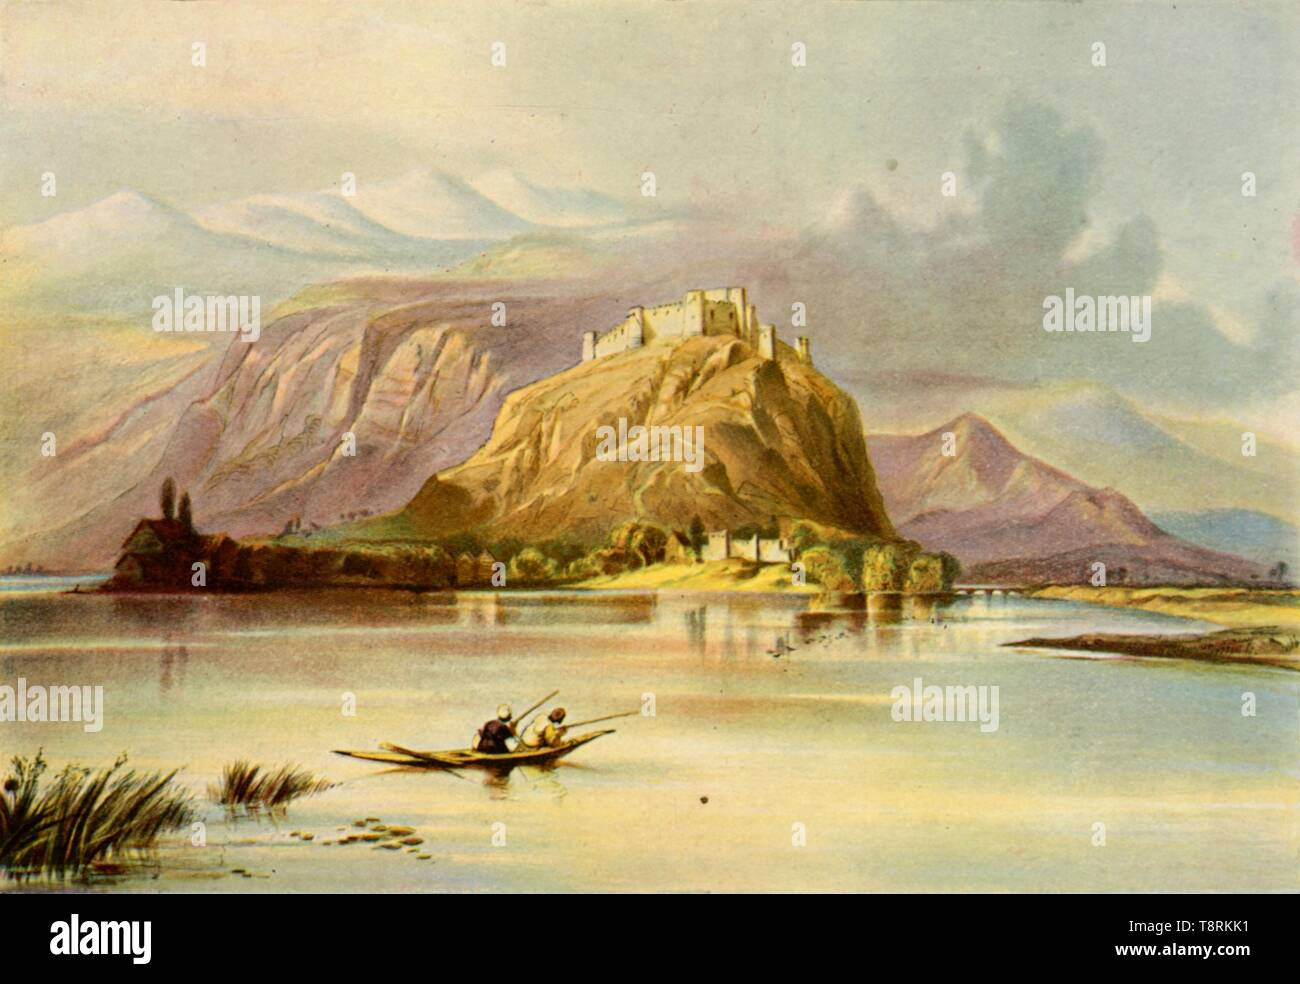 'The City of Srinagar (Kashmir) and Hurri Purbut Fort', 1840s, (1901).  Creator: Unknown. - Stock Image